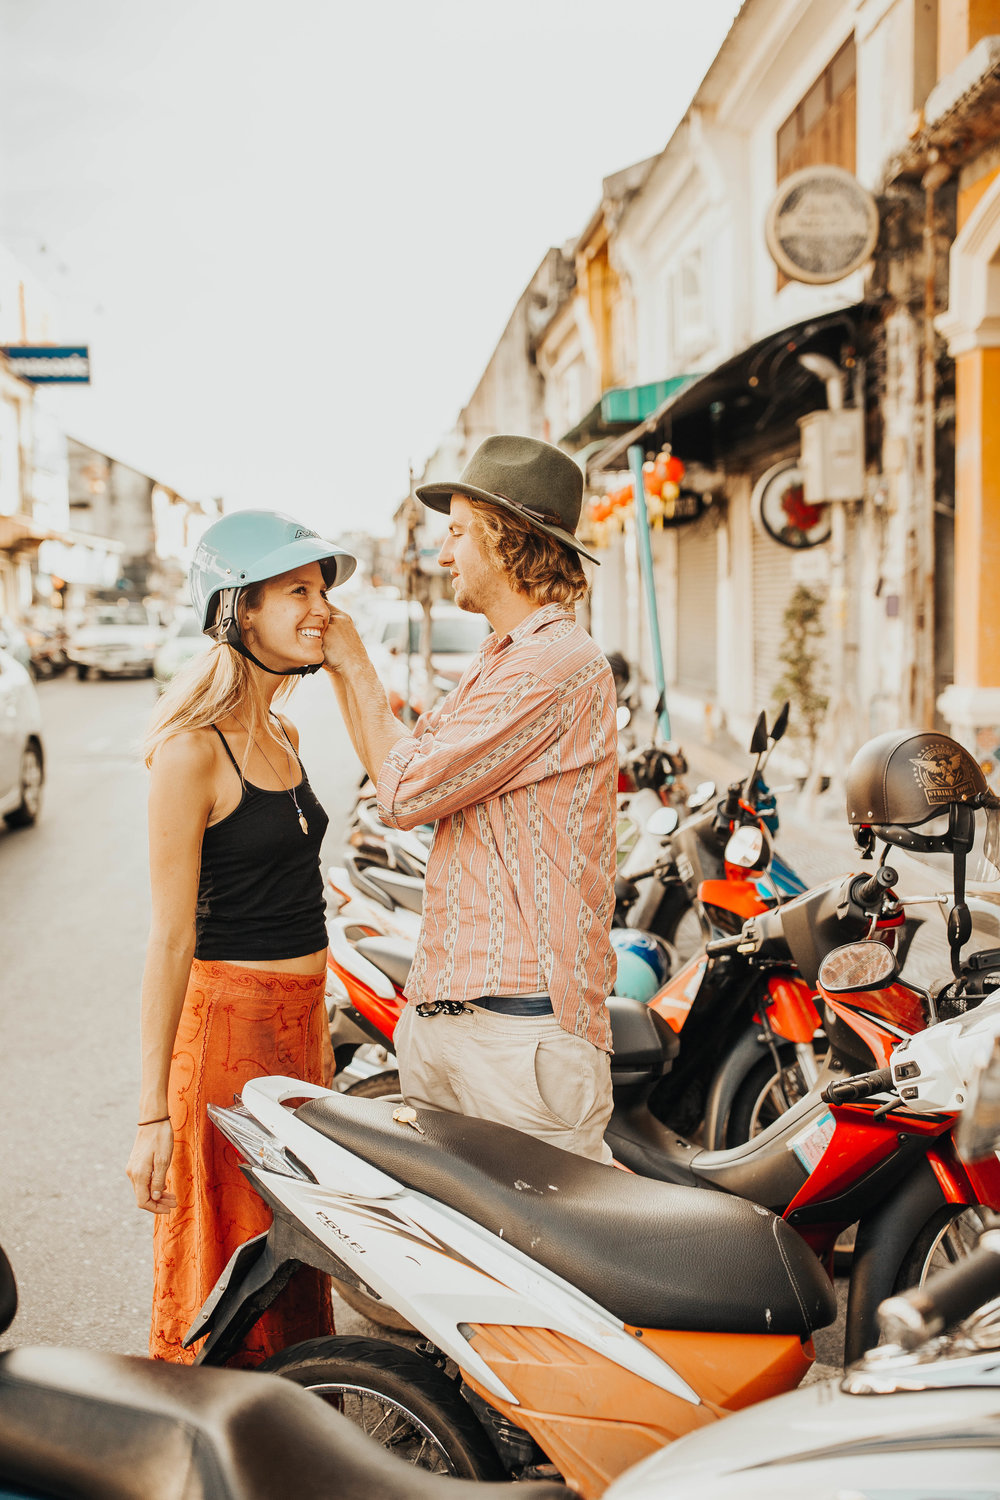 Julie and Will Old Town Phuket Couples Session 79.jpg